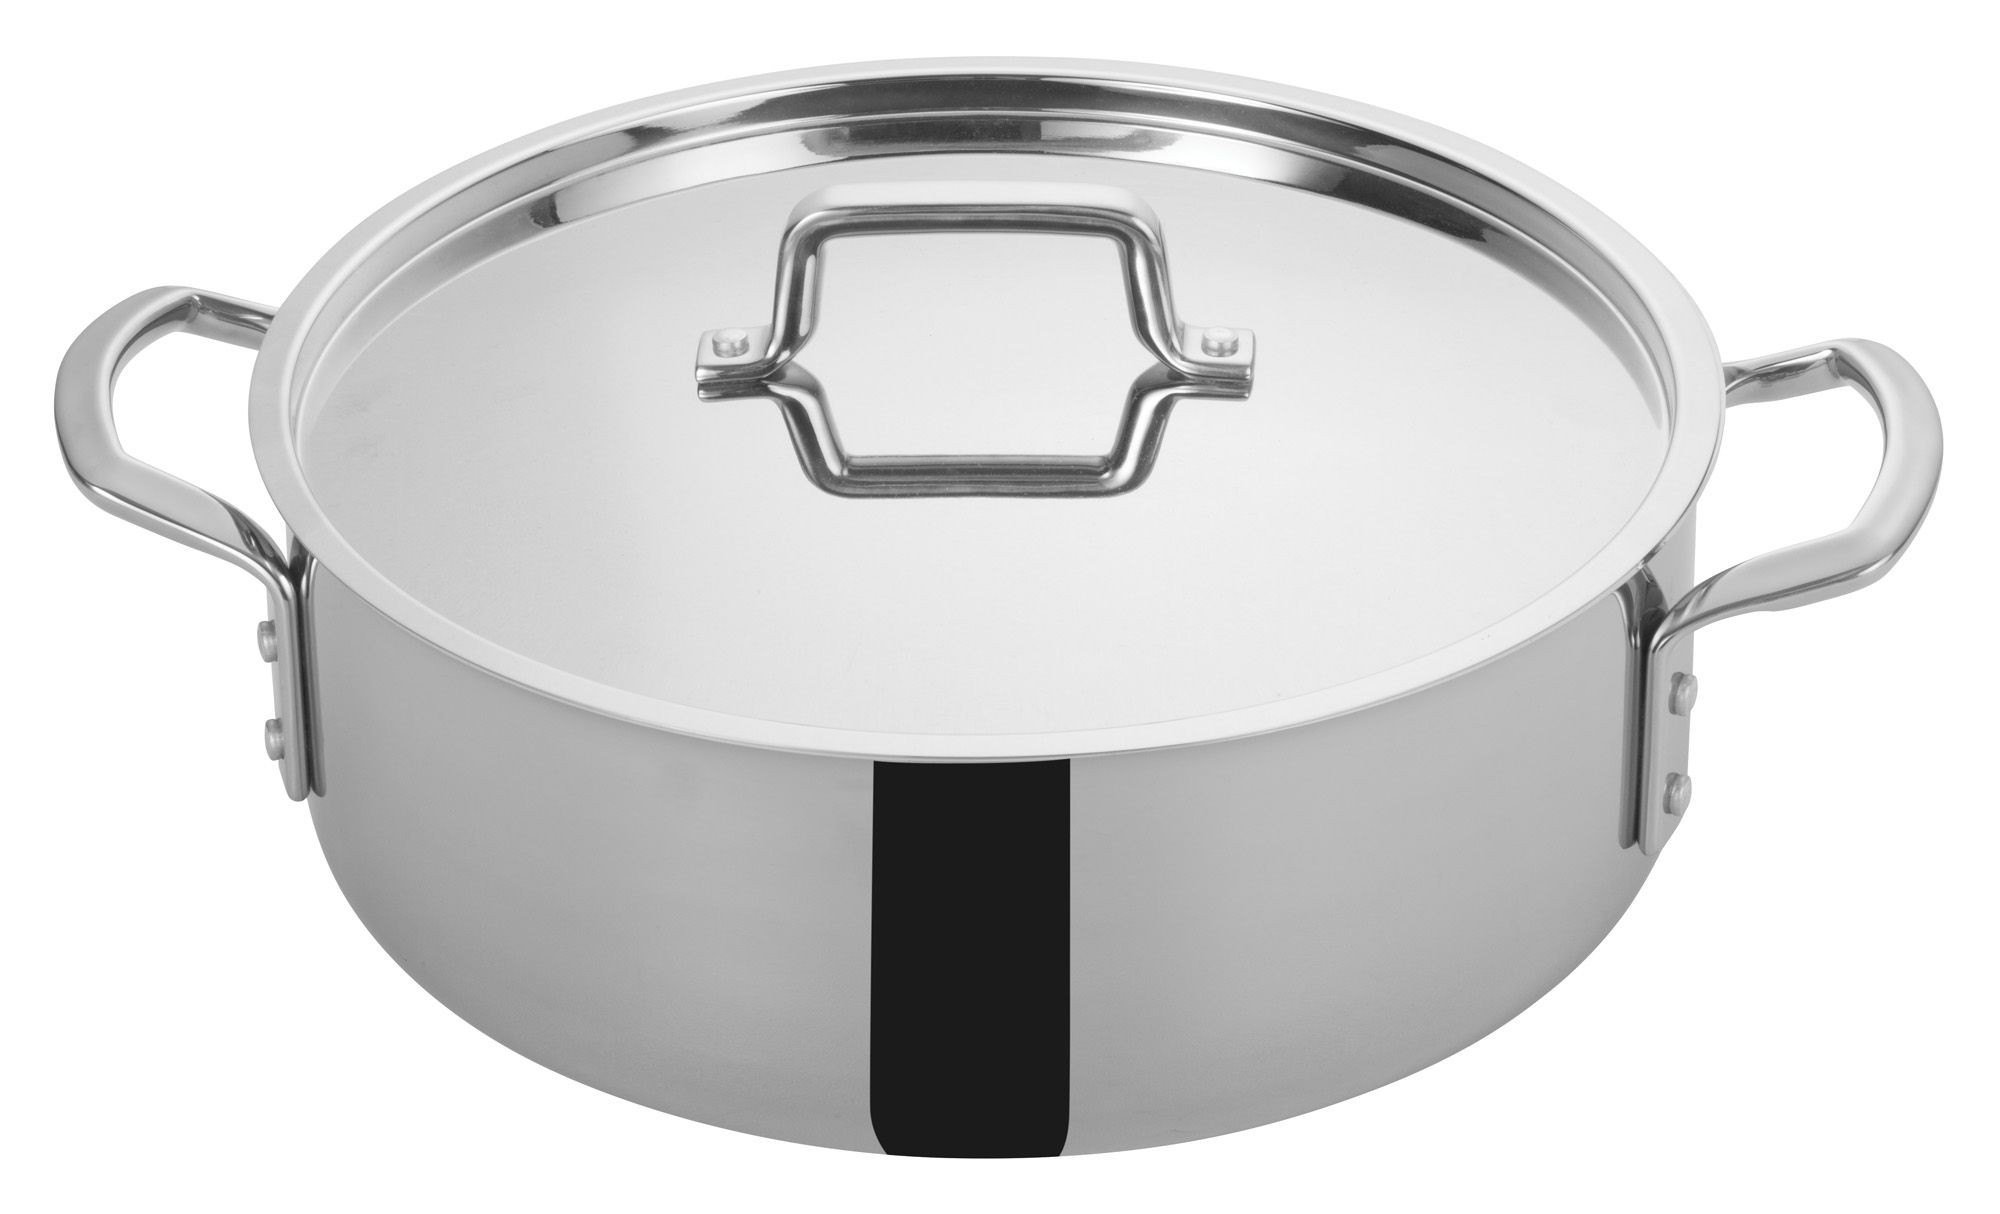 Winco TGBZ-12 Tri-Ply Stainless Steel 12 Qt. Brazier with Cover